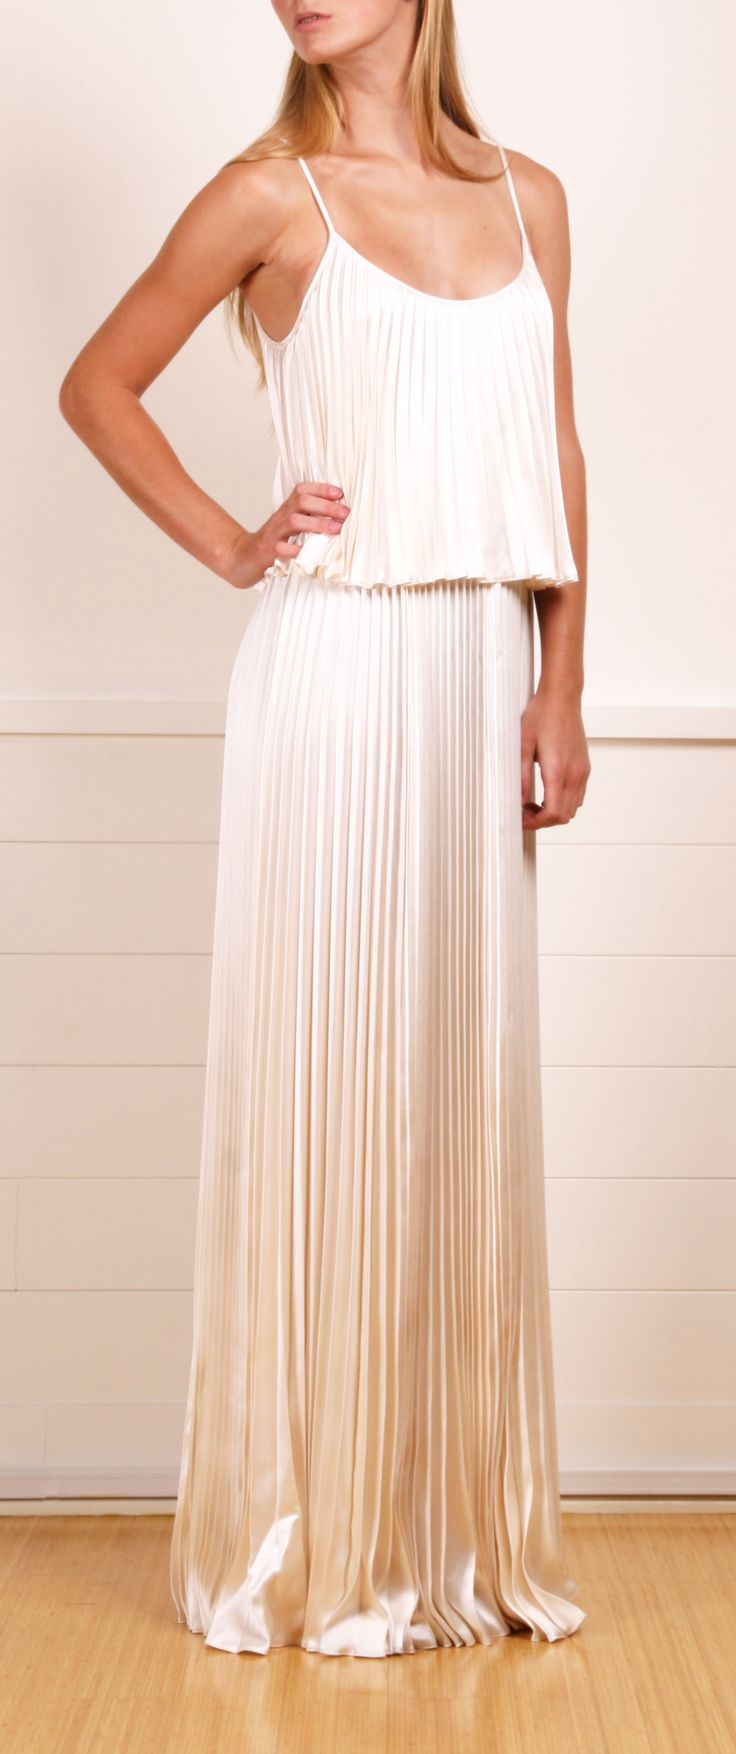 HALSTON HERITAGE DRESS @Michelle Flynn Flynn Coleman-HERS Channel Bianca Jagger's iconic style. Just absolutely love ♥